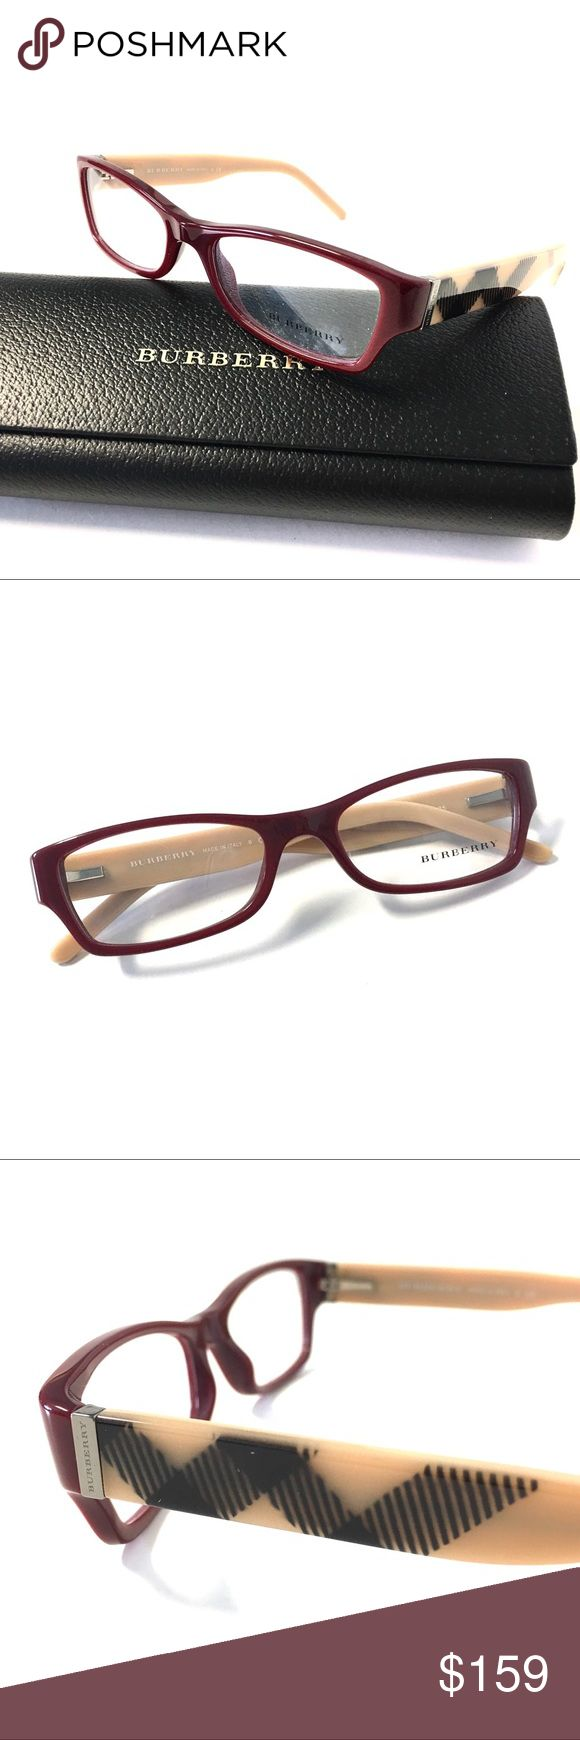 Burberry Burgundy Beige Eyeglasses Burgundy Beige Burberry Eyeglasses  Burberry Eyeglasses for Prescription lenses  SIZE: 52mm - 17mm - 135mm  100% Authentic!!!  Includes a Burberry Case. No Tags Burberry Accessories Glasses